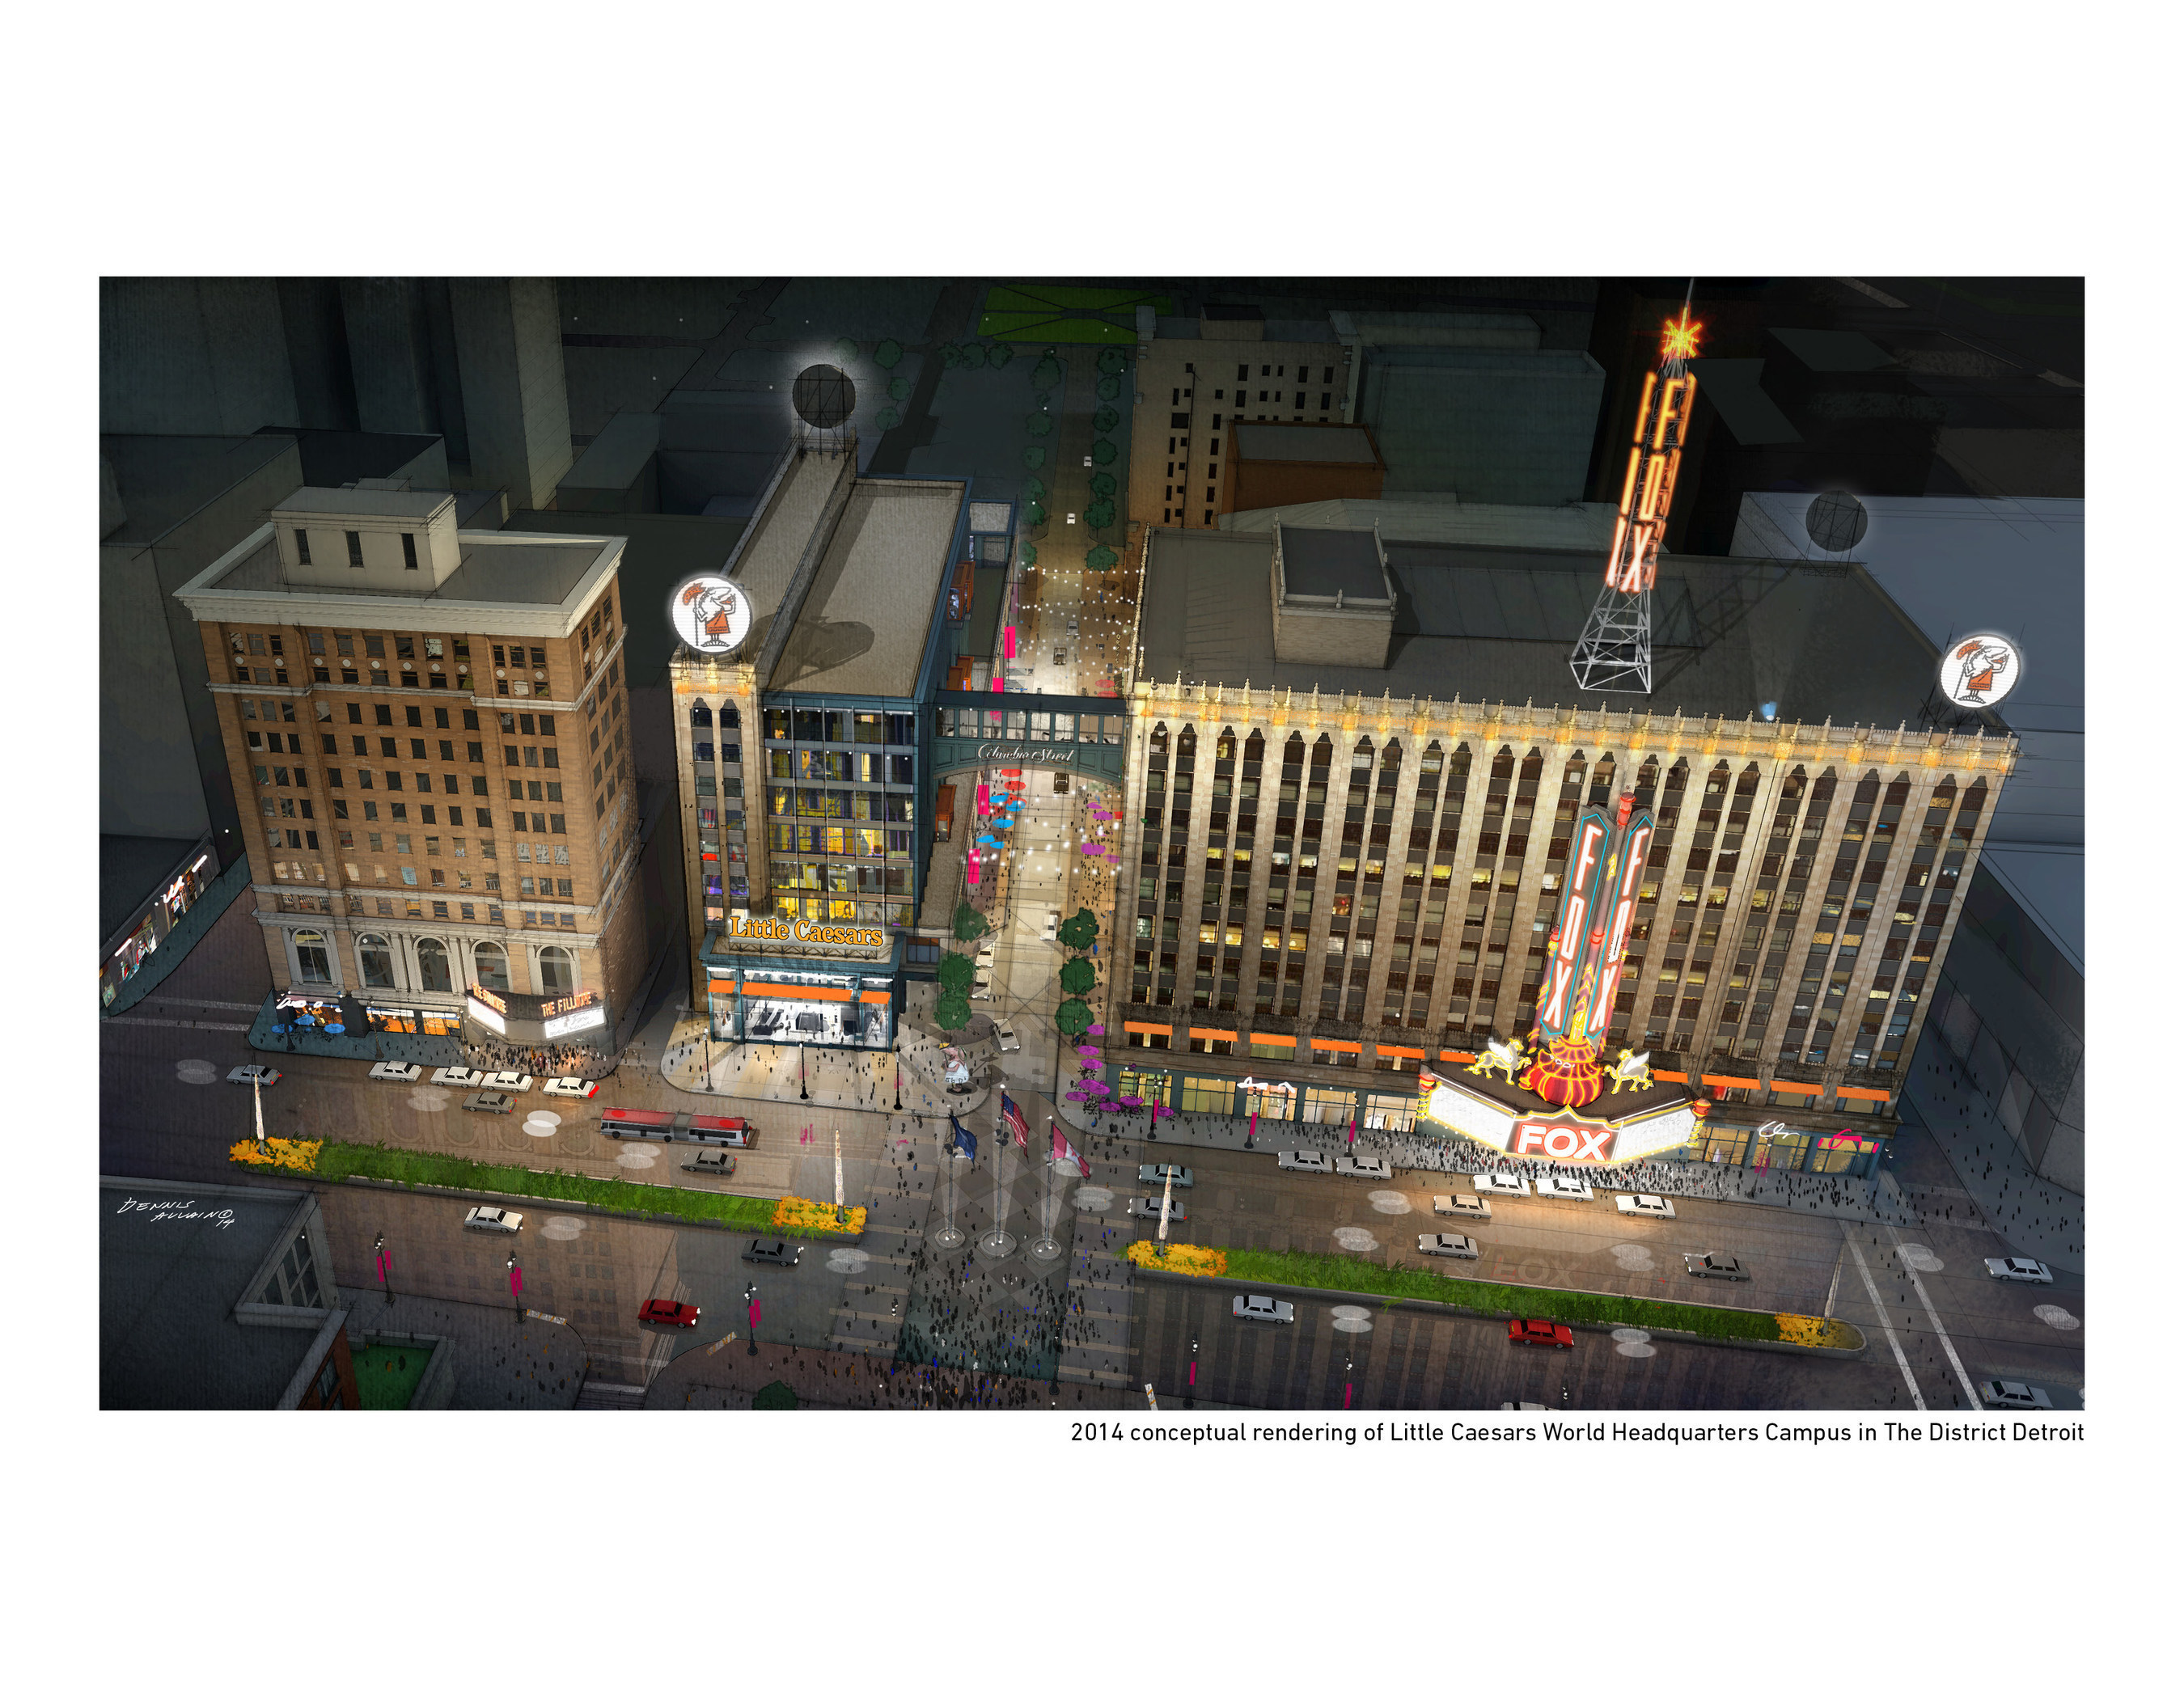 2014 conceptual rendering of Little Caesars World Headquarters Campus in The District Detroit